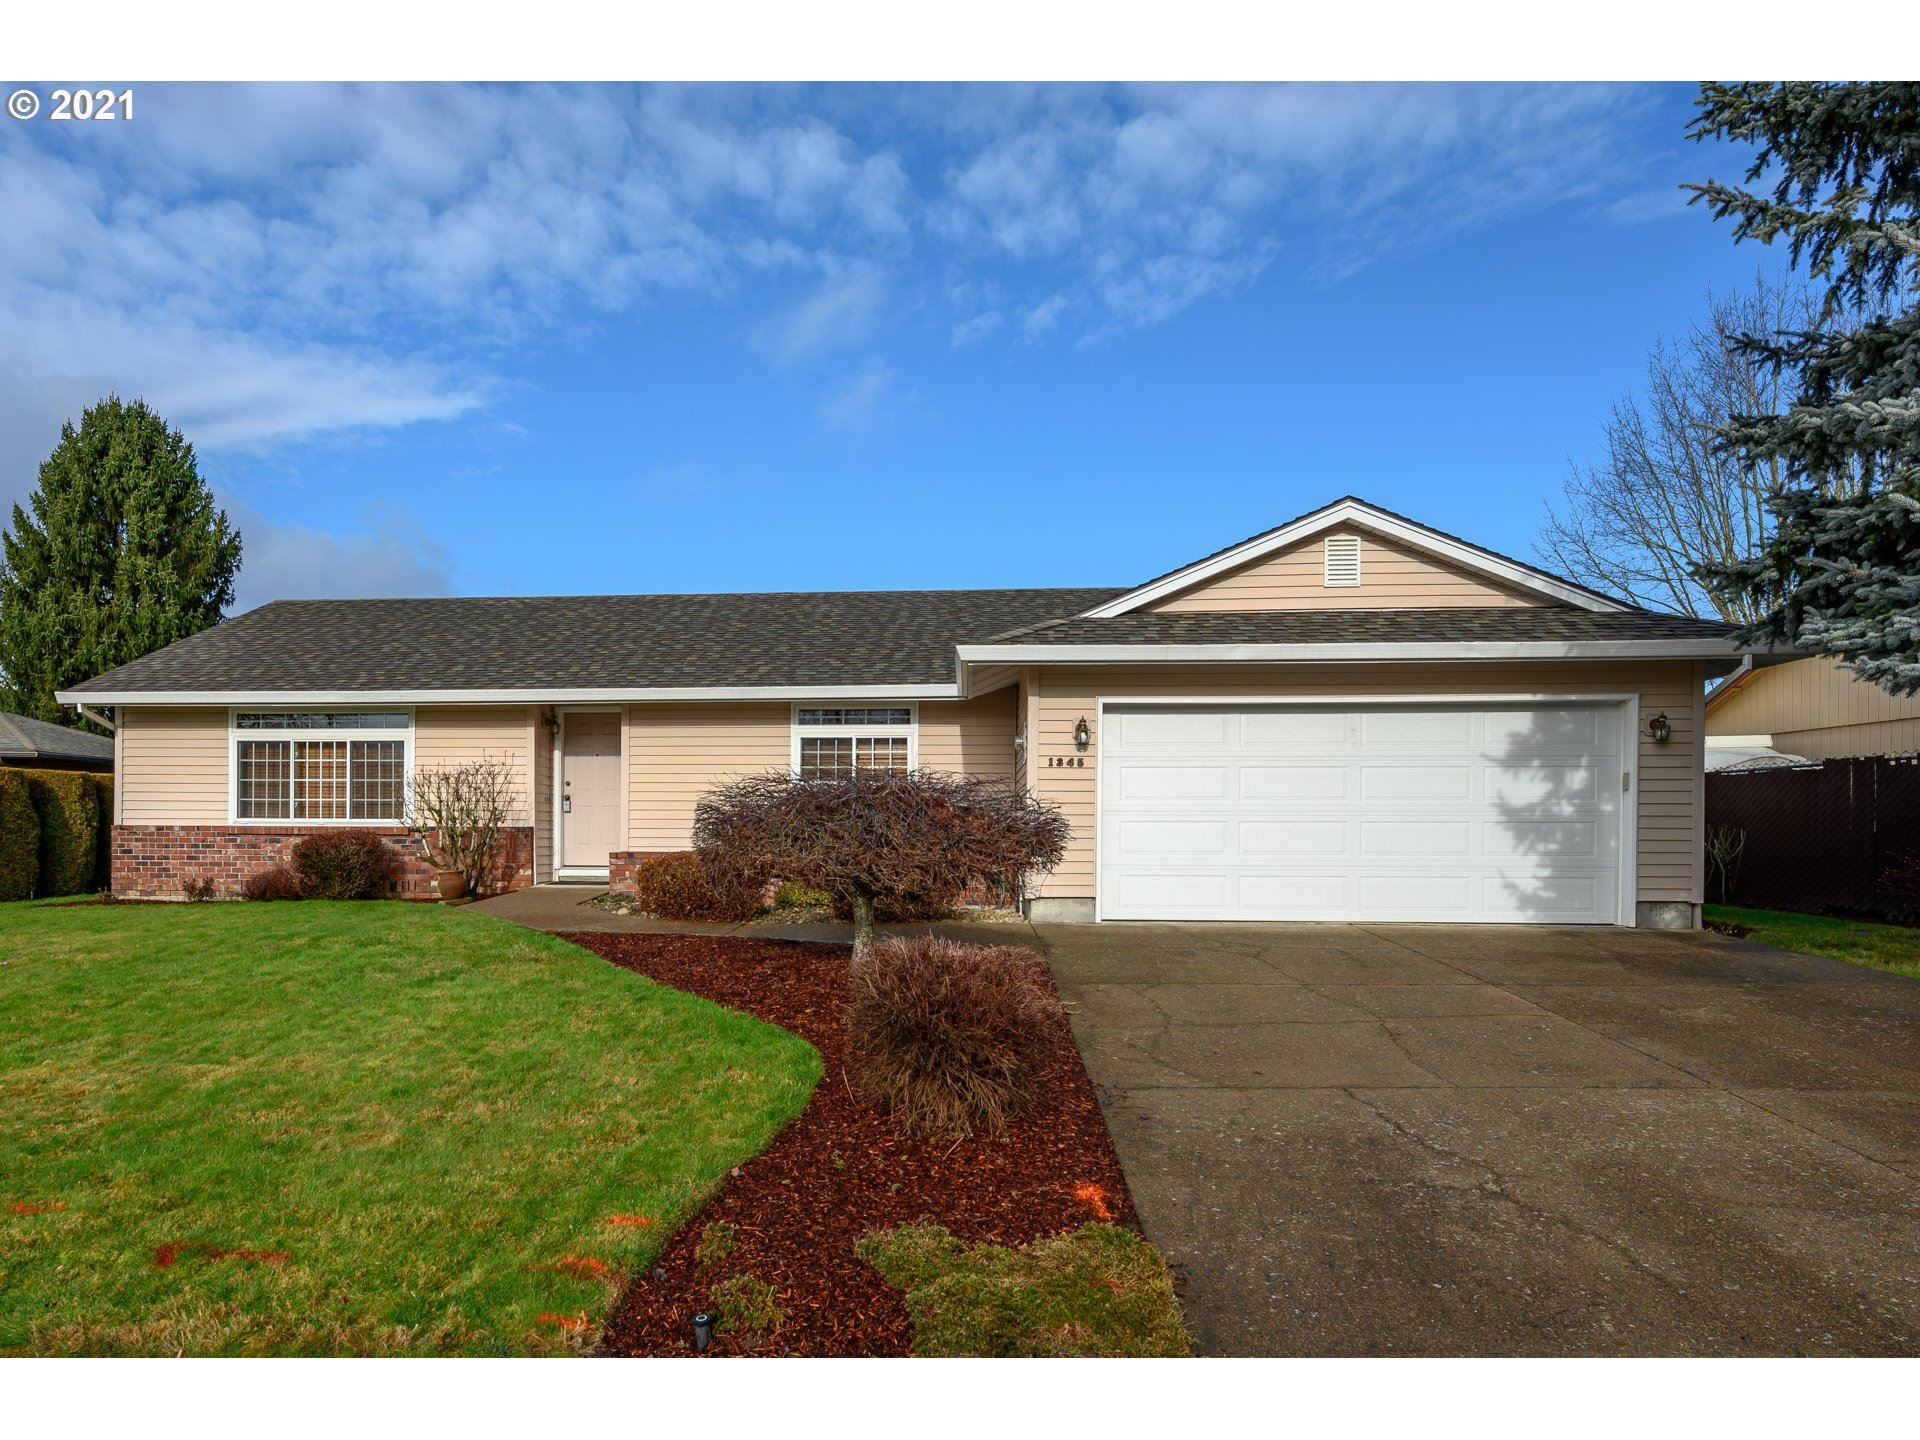 Photo for 1345 SW GILSON ST, McMinnville, OR 97128 (MLS # 21244578)